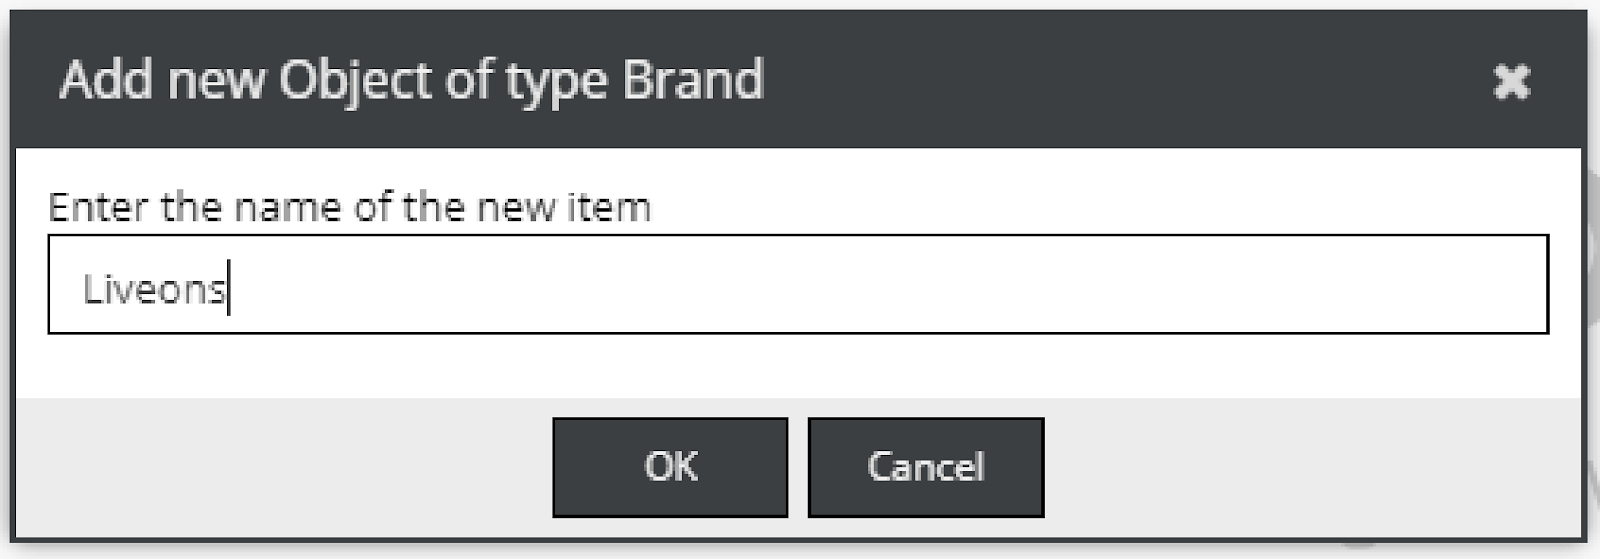 adding new object type in Pimcore